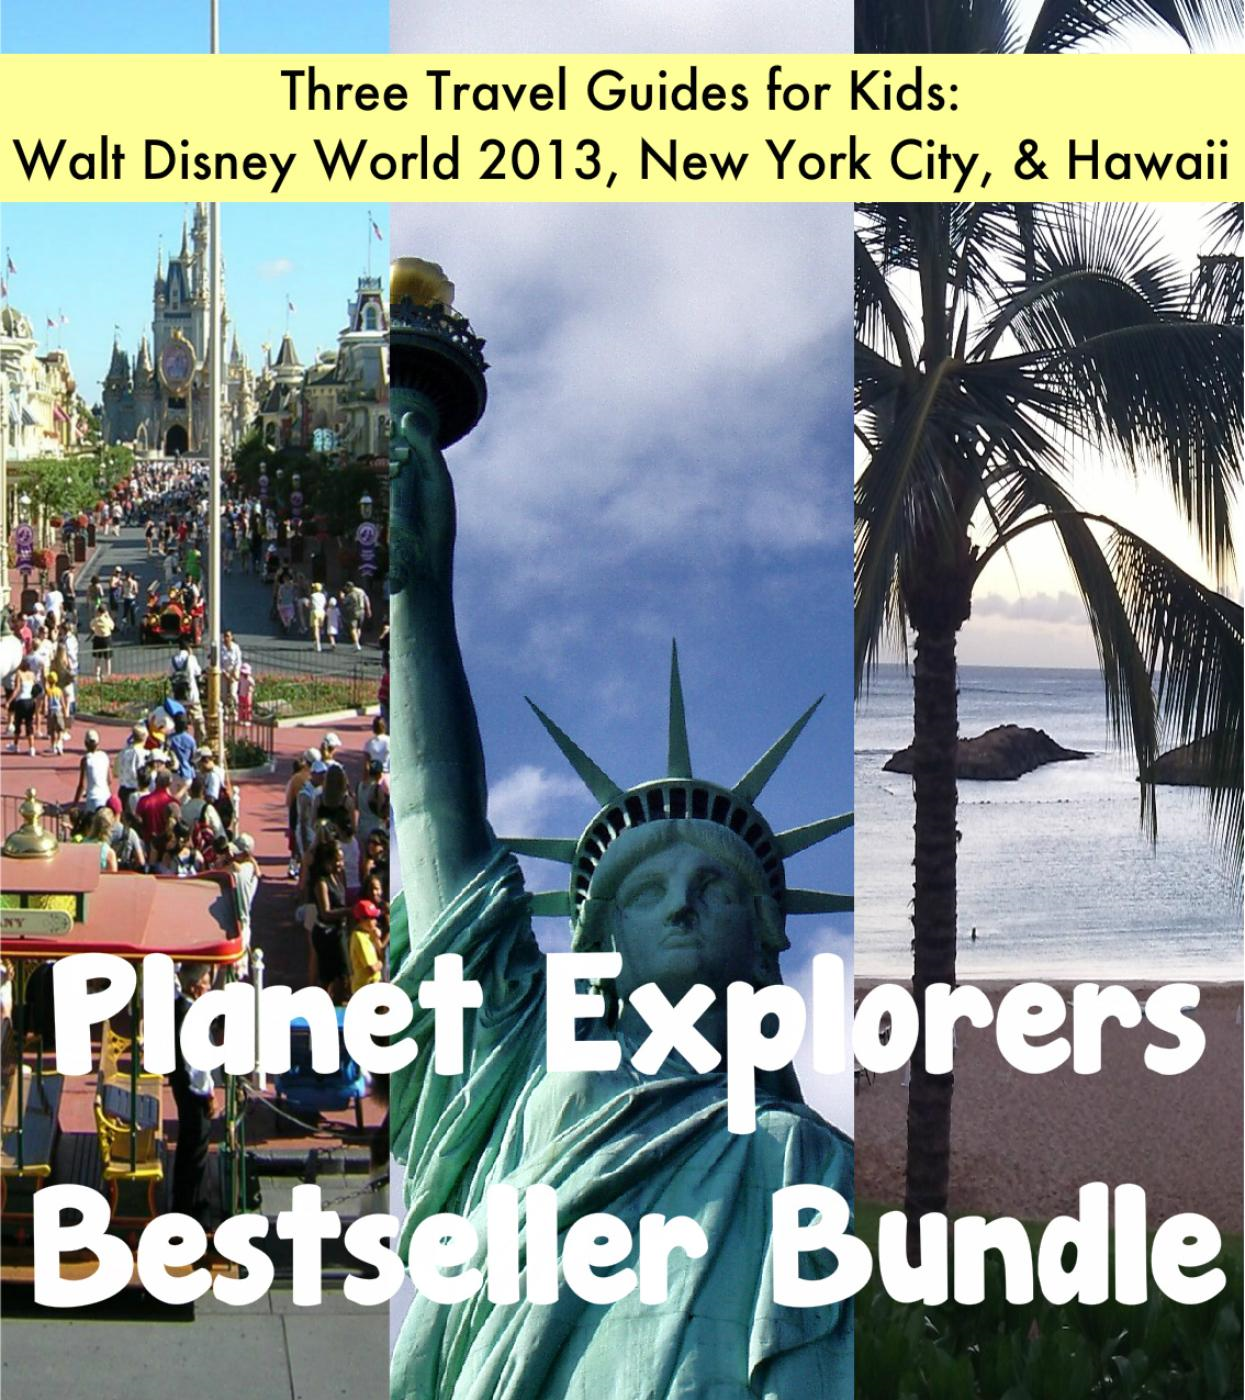 Planet Explorers Bestseller Bundle: Three Travel Guides for Kids including Walt Disney World 2013, New York City & Hawaii